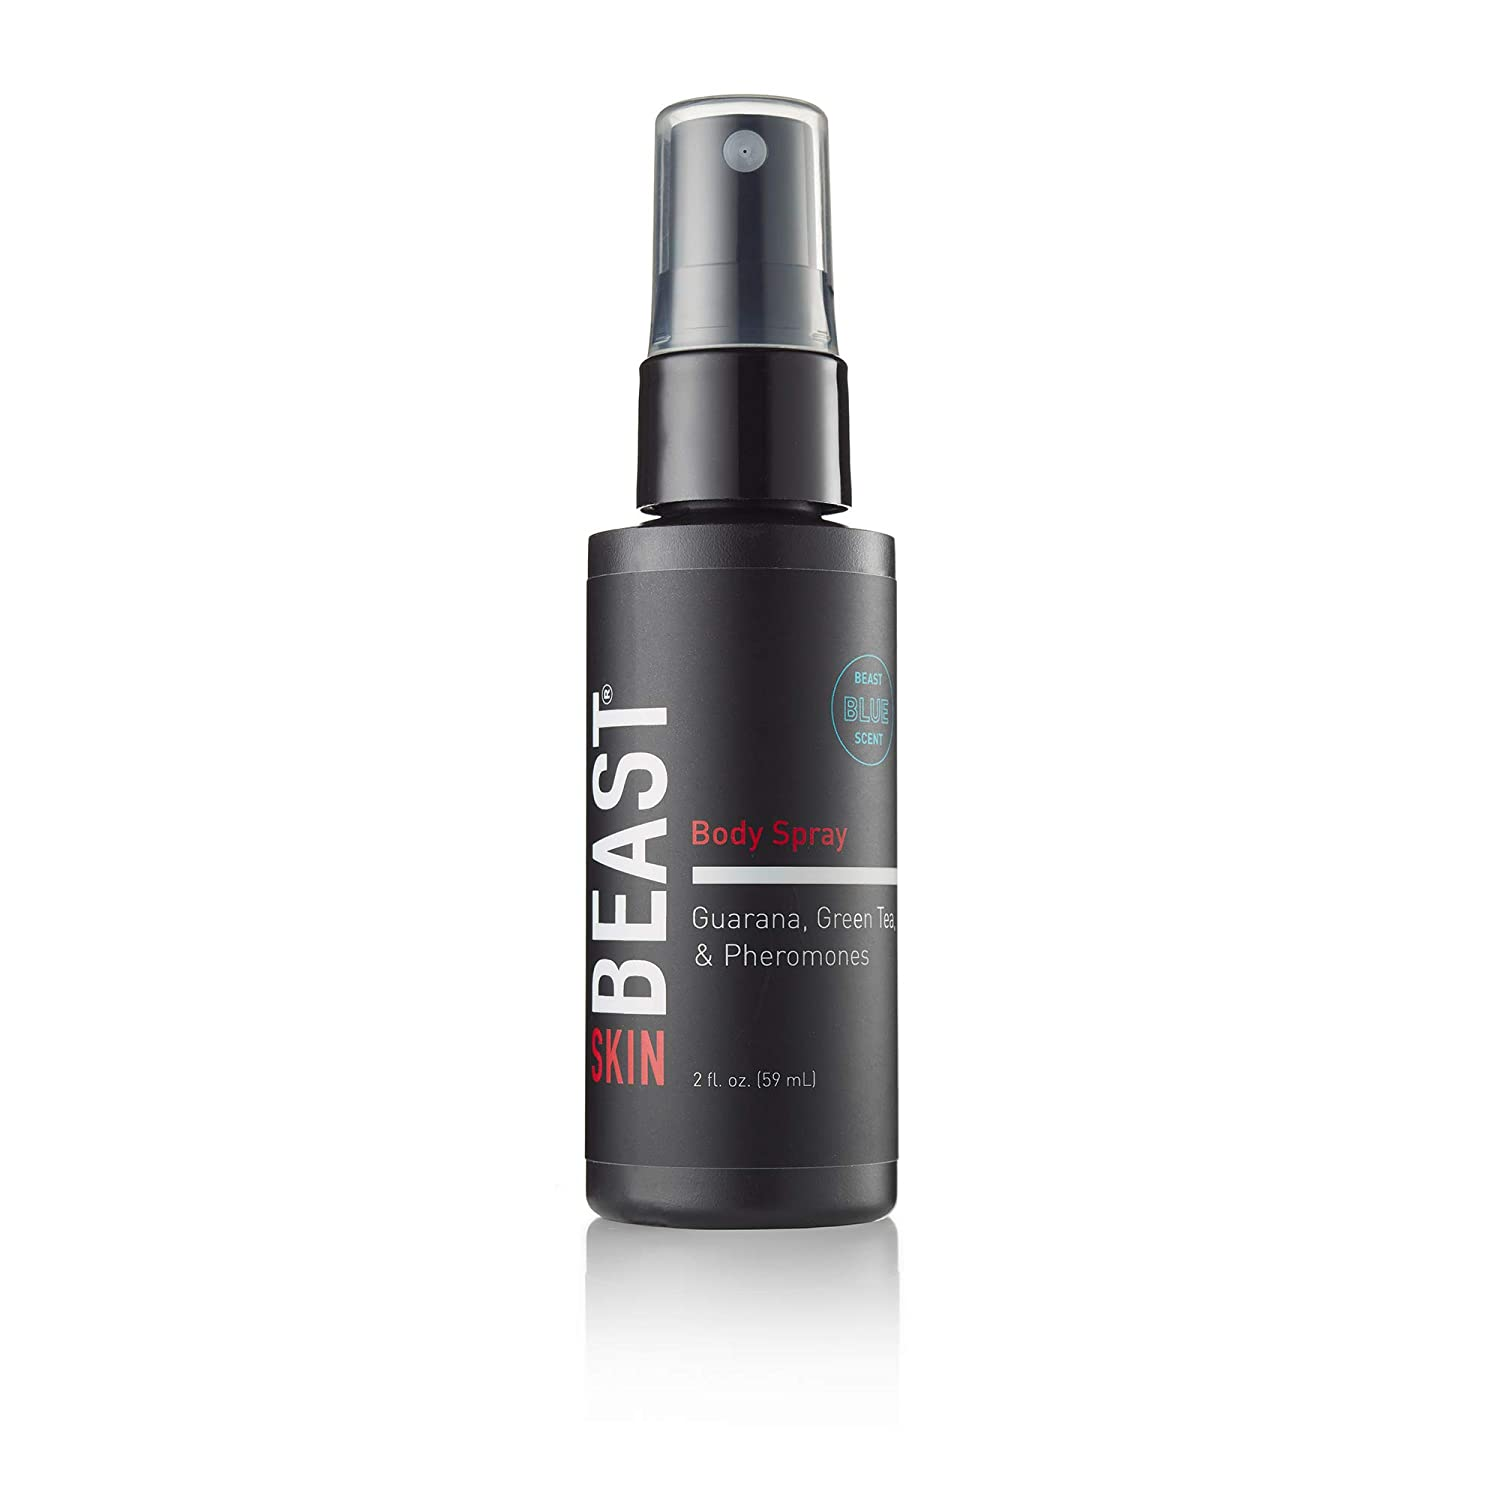 Beast Men's Body Spray with Pheromones - Naturally Derived to Power Natural Attractiveness - Non-Toxic Masculinity - Dye Phthalate Paraben Cruelty Free & USA Made by Tame the Beast